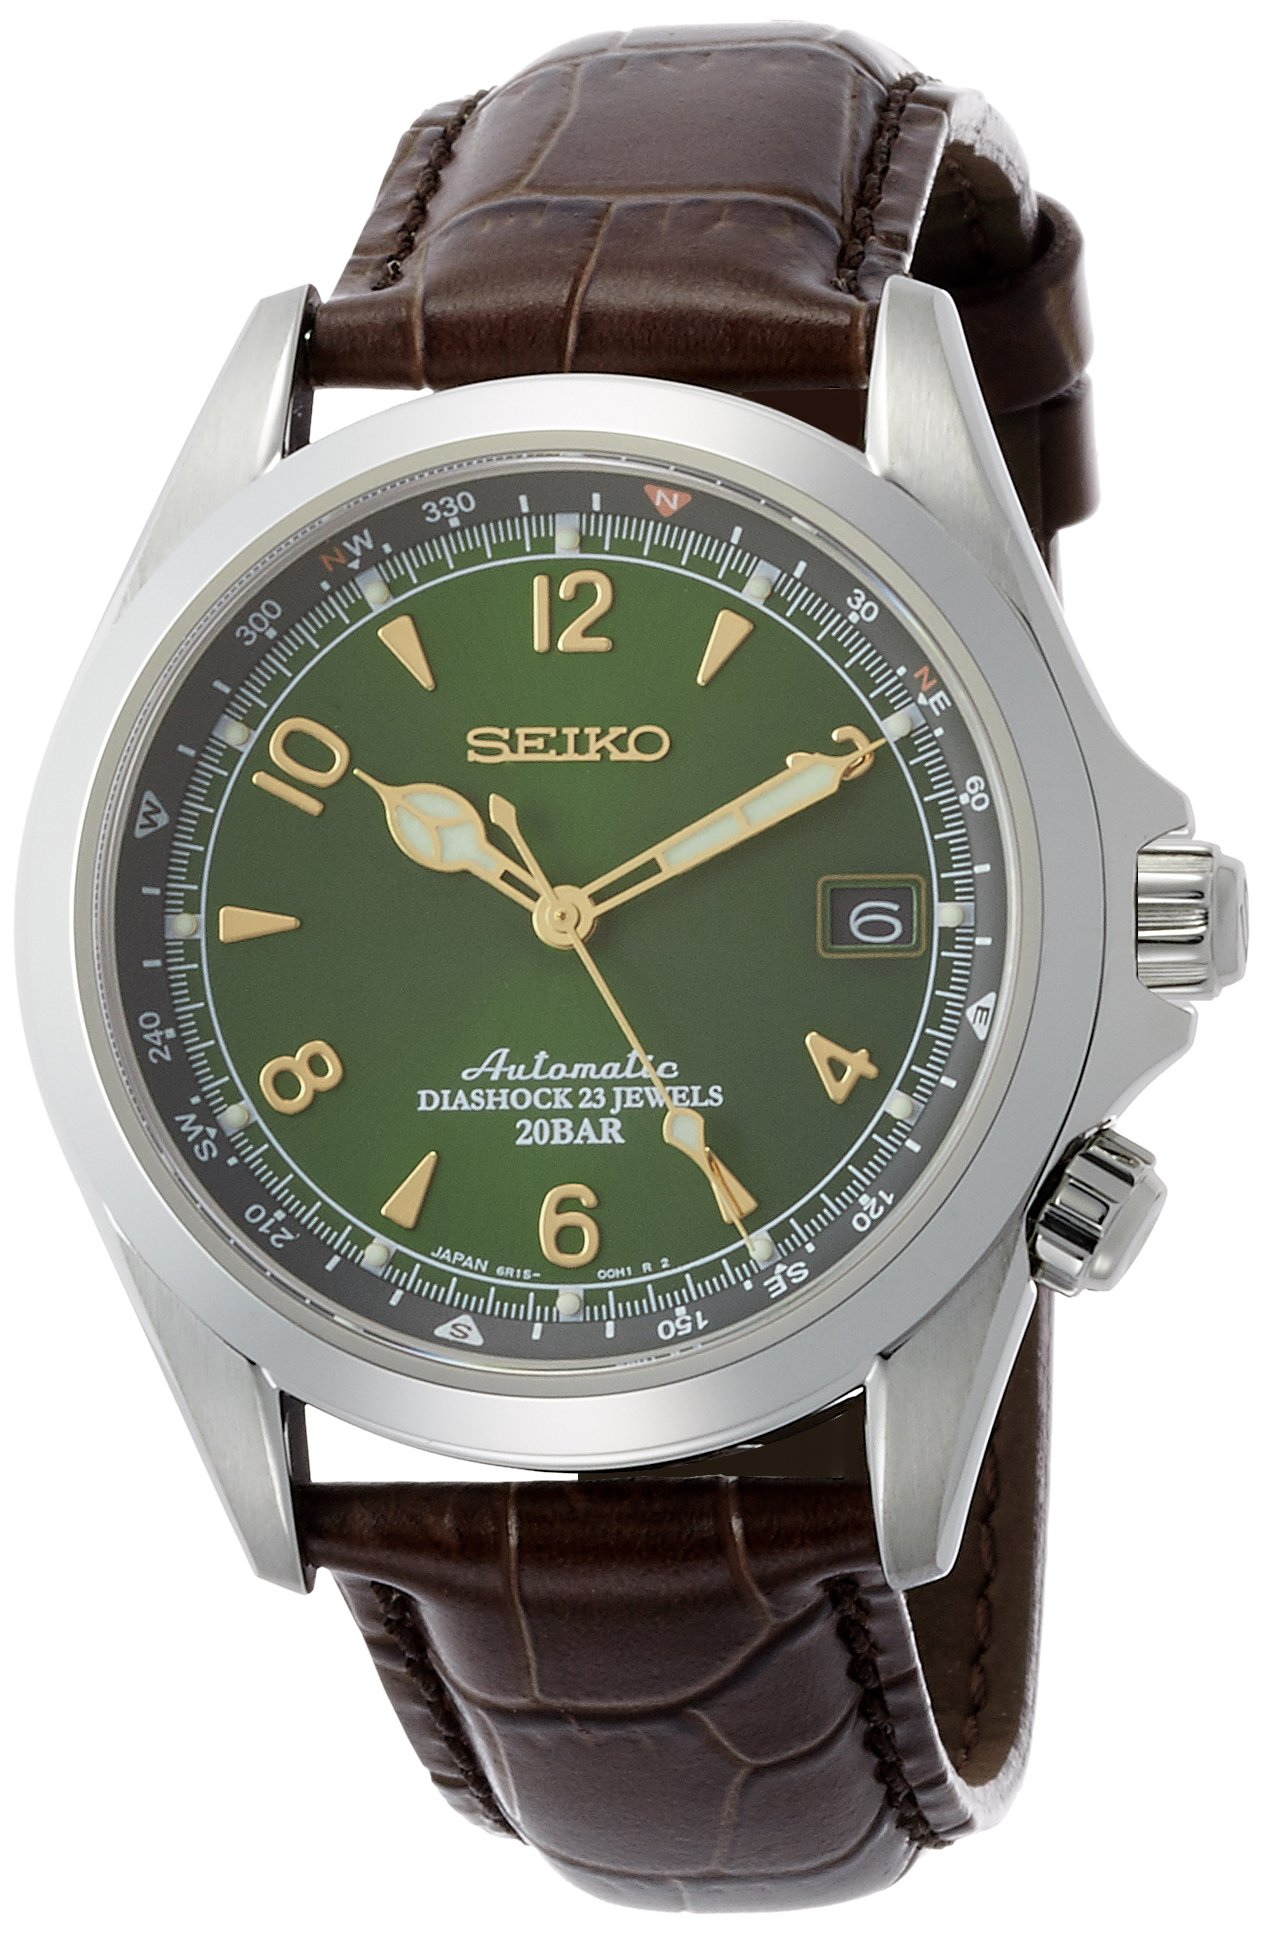 Seiko Men's Stainless Steel Japanese-Automatic Watch with Leather Calfskin Strap, Brown, 20 (Model: SARB017) by SEIKO